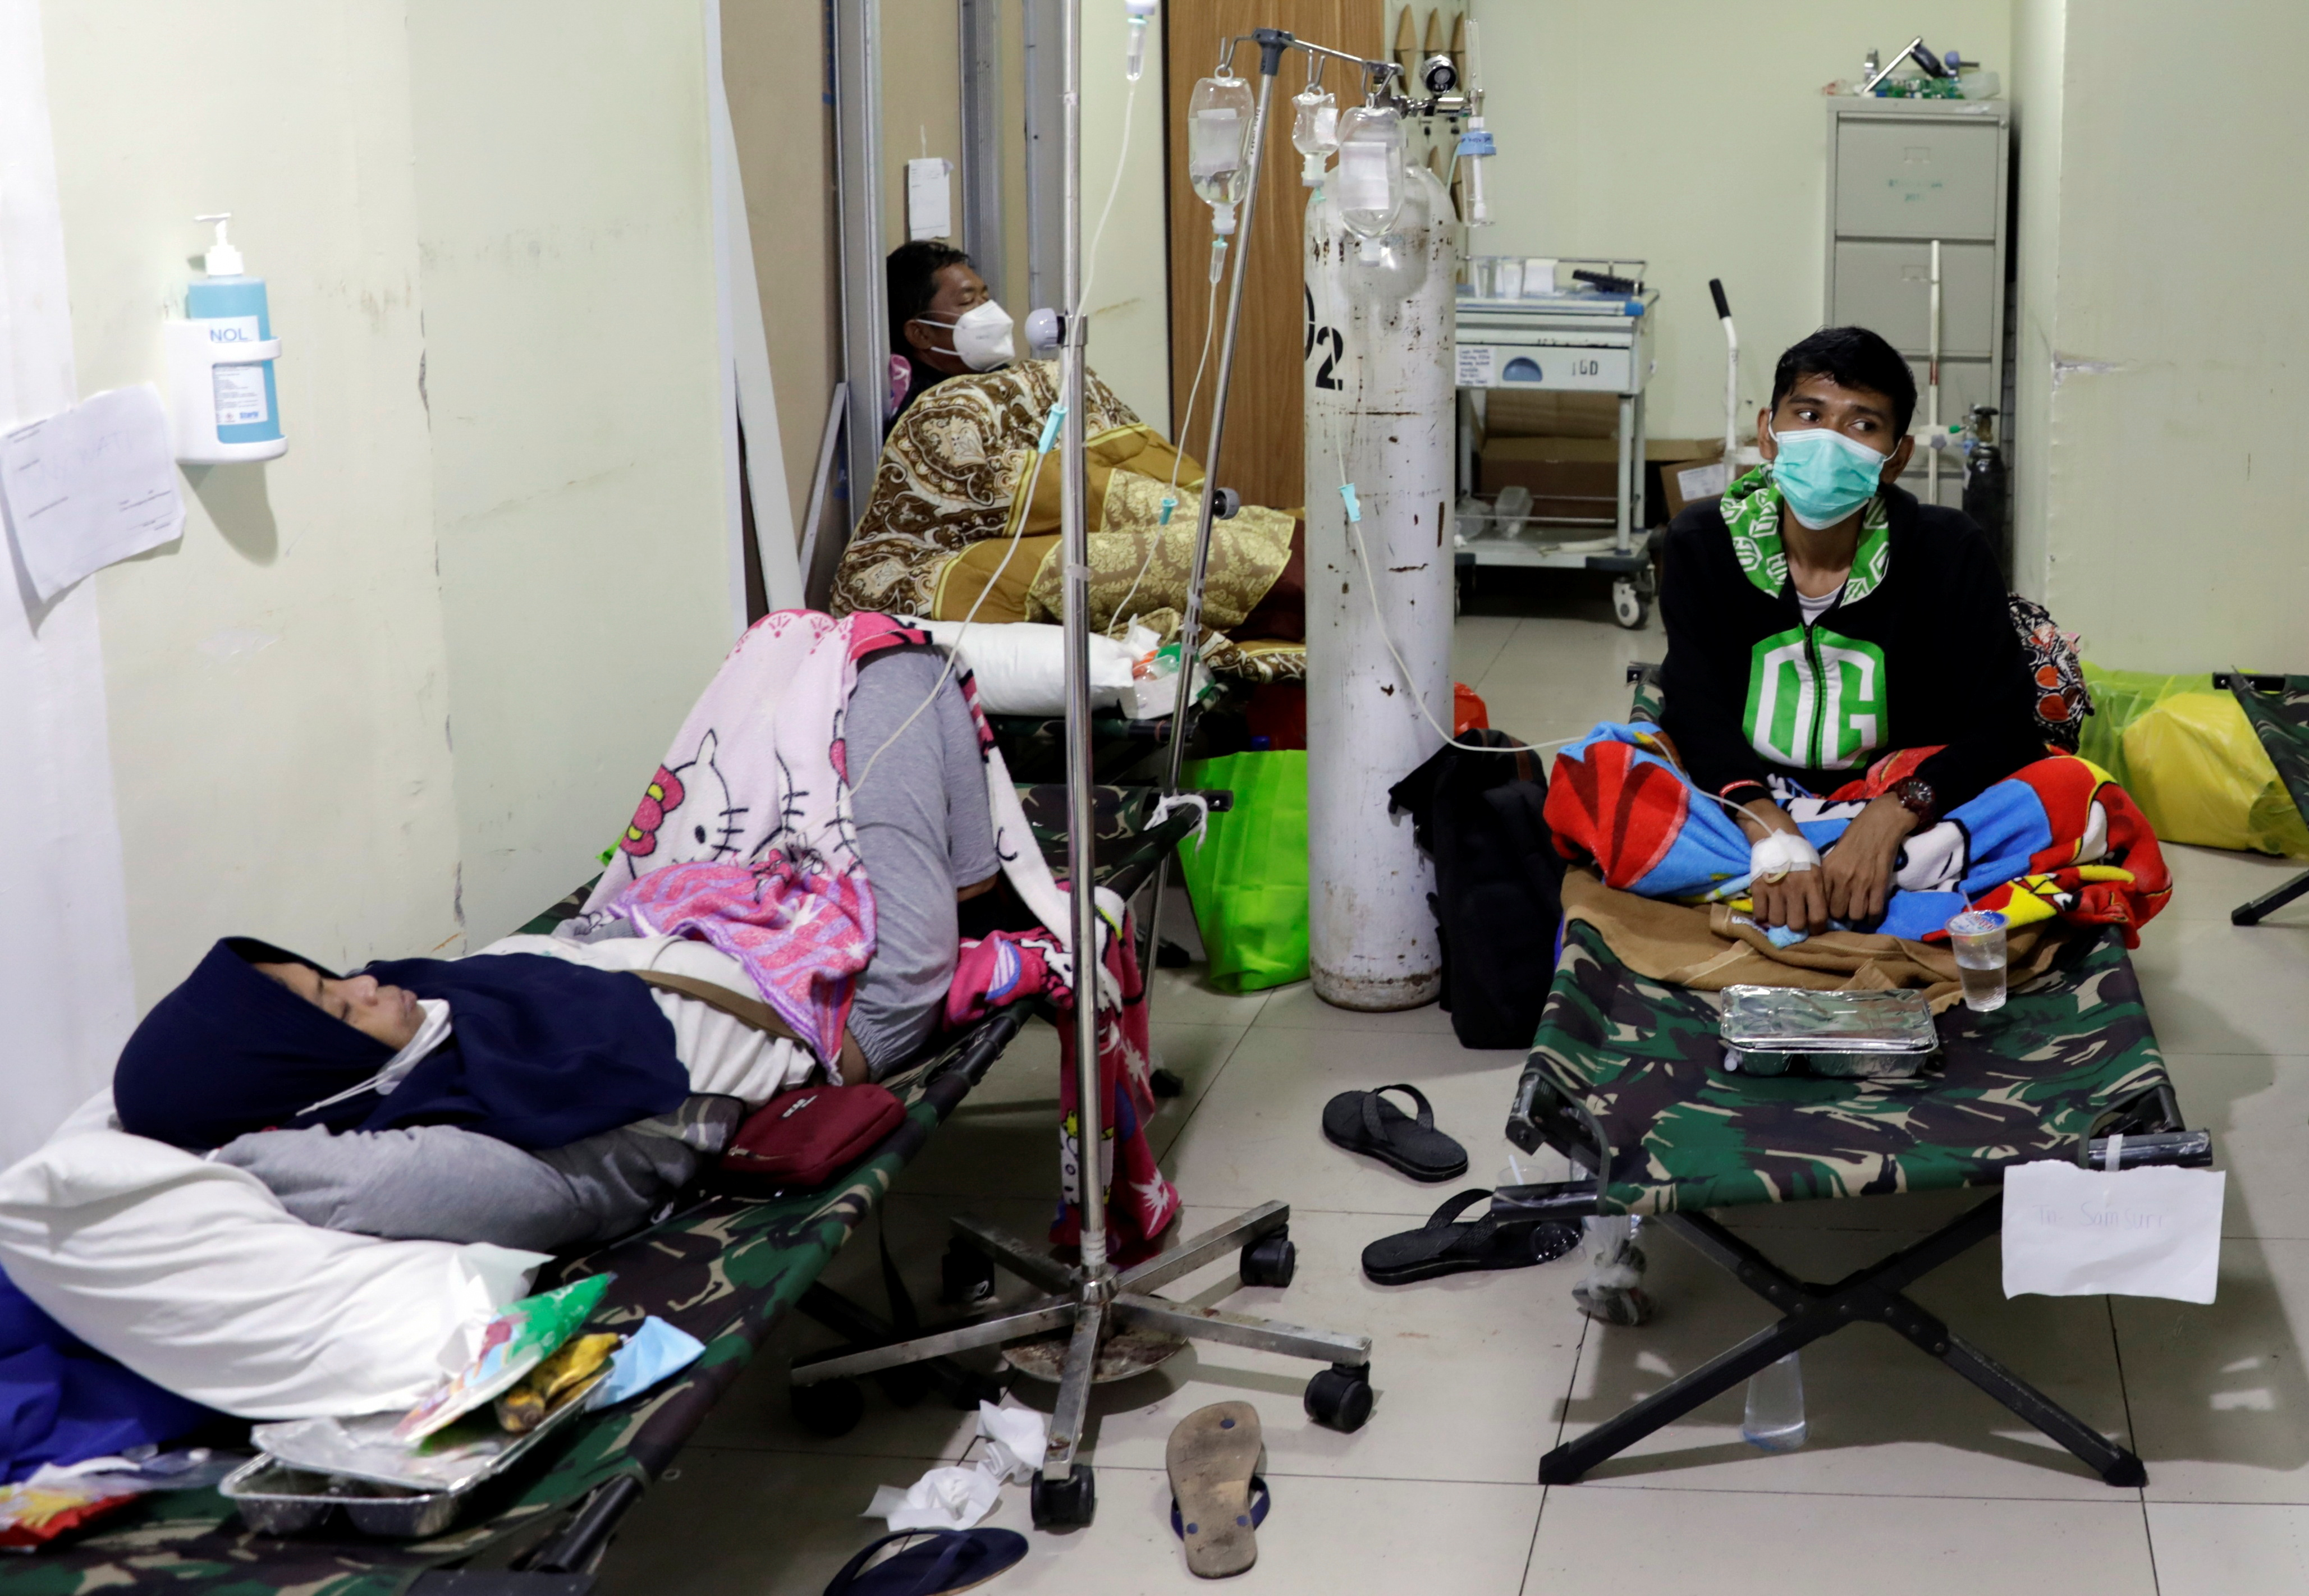 People rest on veld beds inside the emergency ward for the coronavirus disease (COVID-19) patients  at a government-run hospital in Jakarta, Indonesia, June 29, 2021. REUTERS/Willy Kurniawan